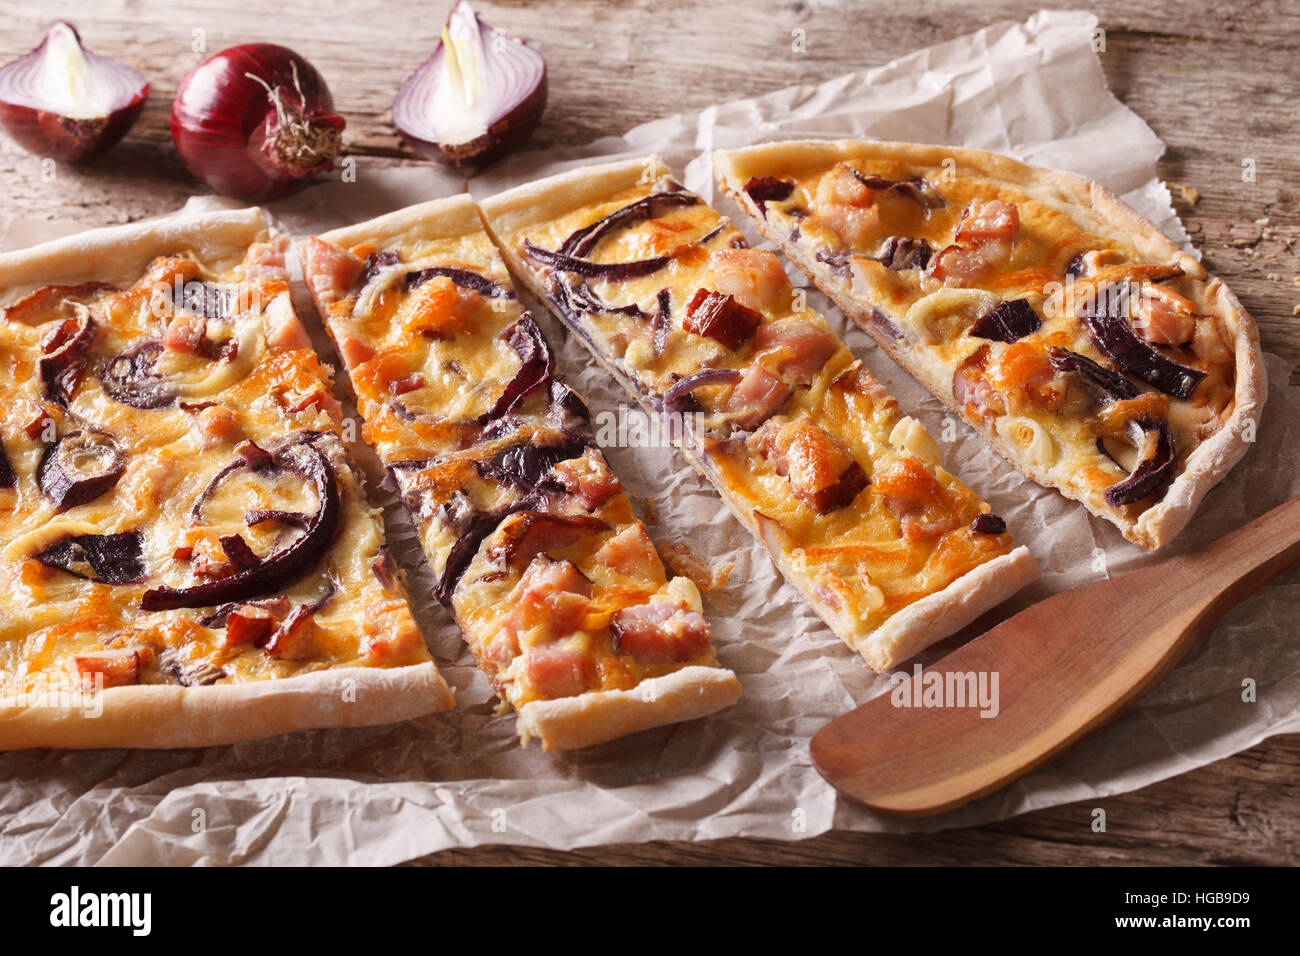 sliced pie flammkuchen with bacon and red onion on the paper. Horizontal closeup - Stock Image